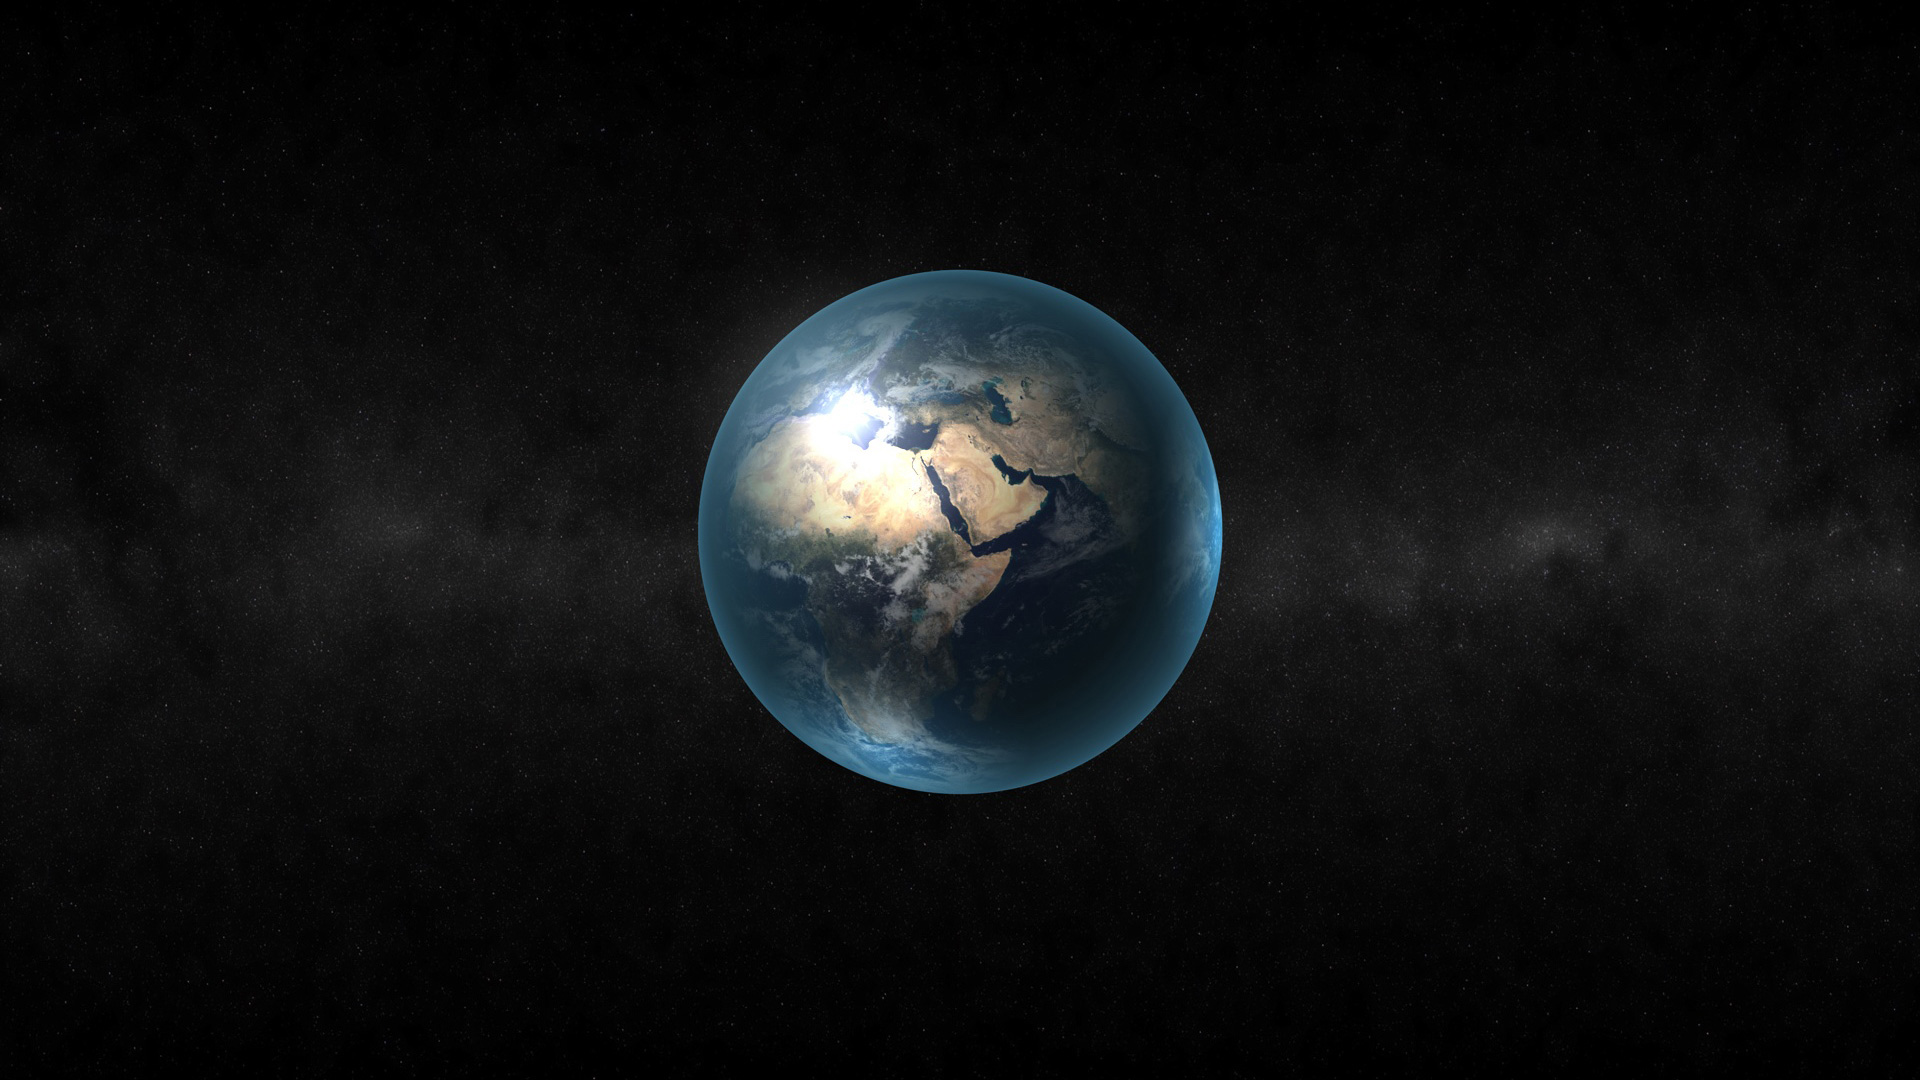 HD Planet Earth 1118.21 Kb